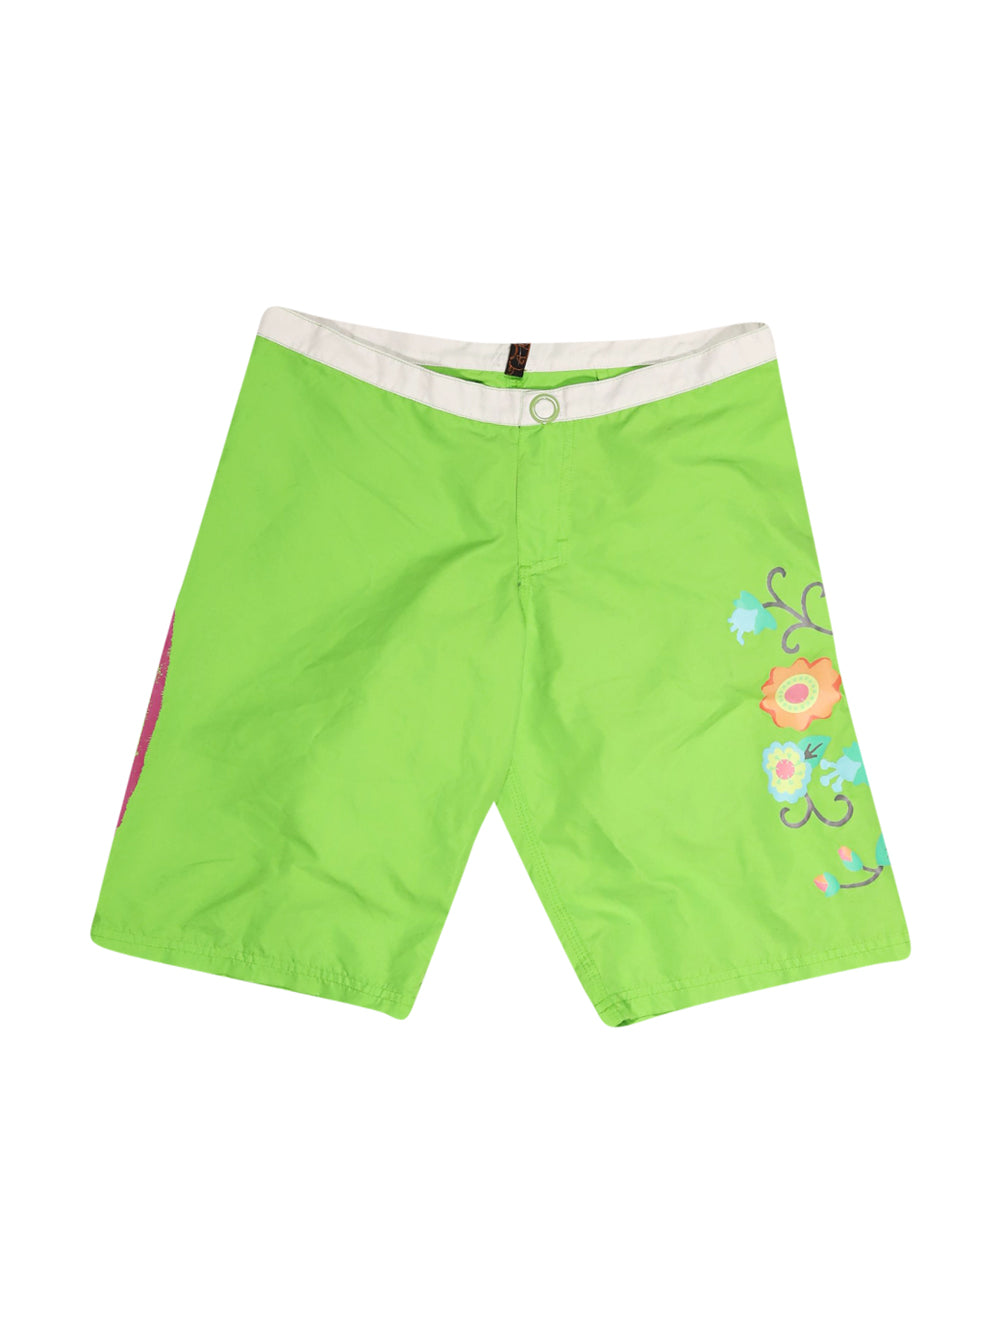 Front photo of Preloved Sundek Green Woman's shorts - size 10/M